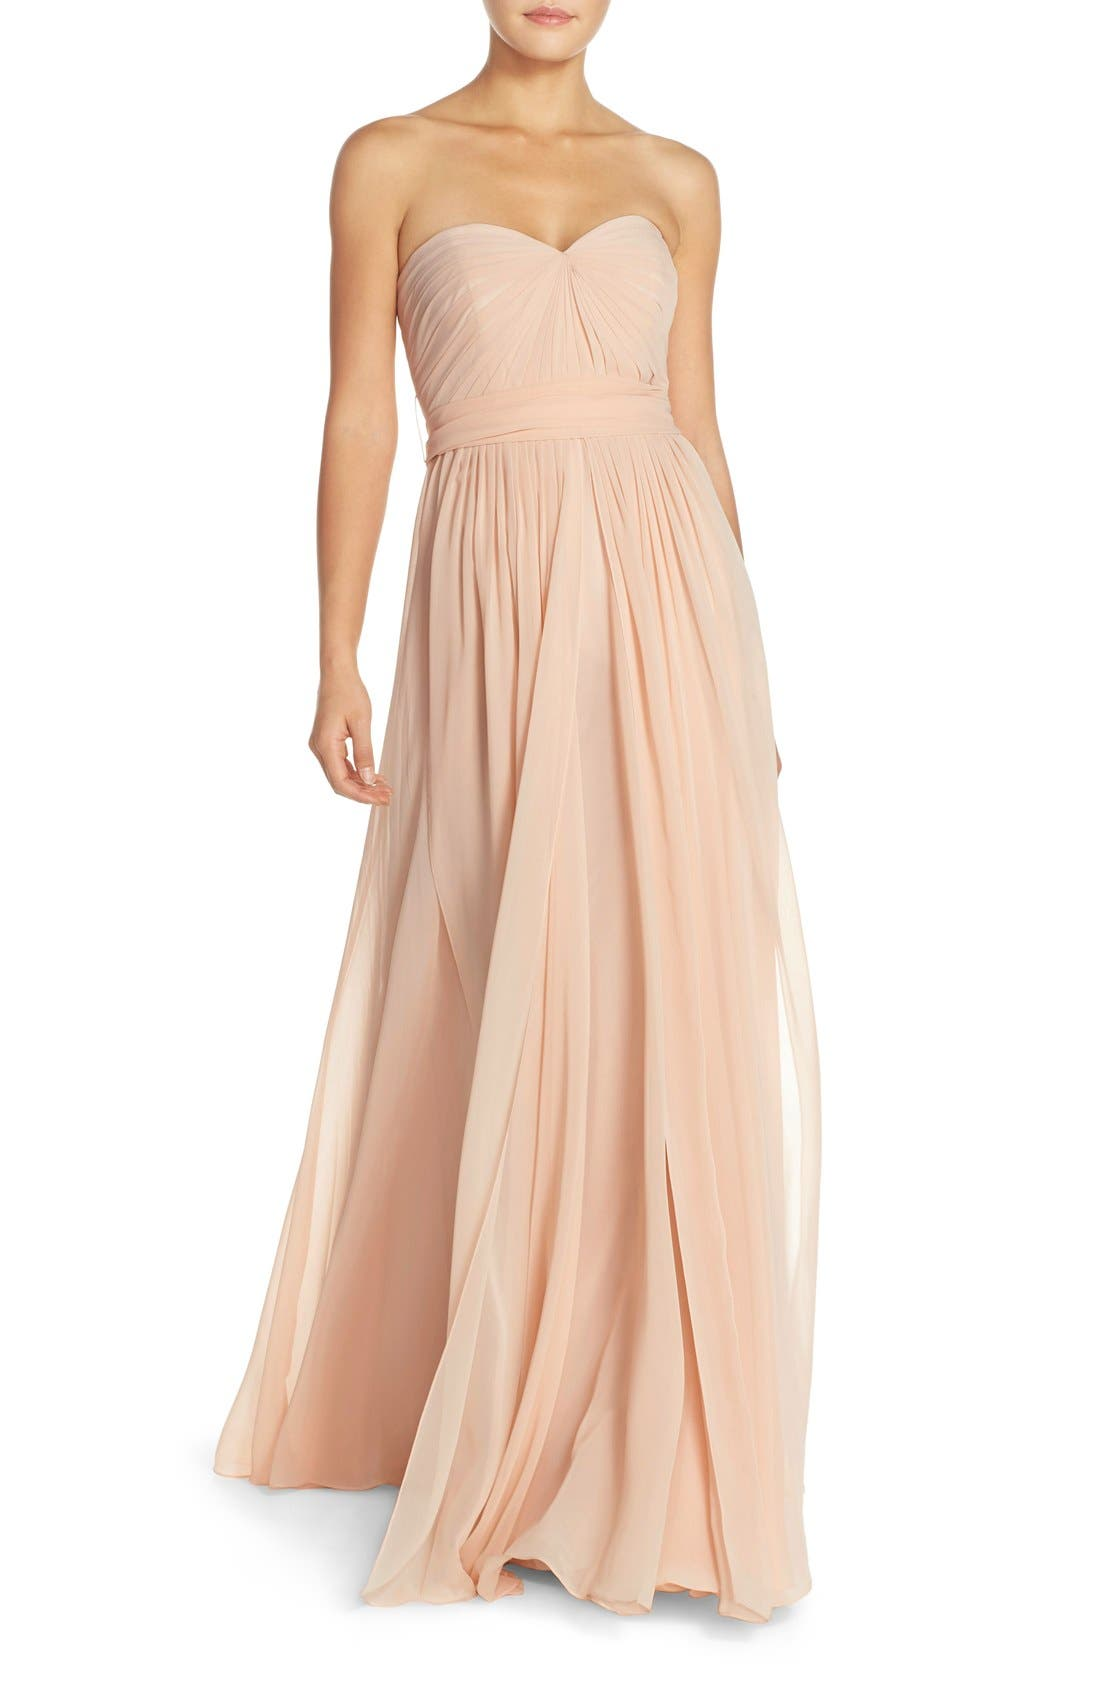 Alternate Image 1 Selected - Jenny Yoo Mira Convertible Strapless Chiffon Gown